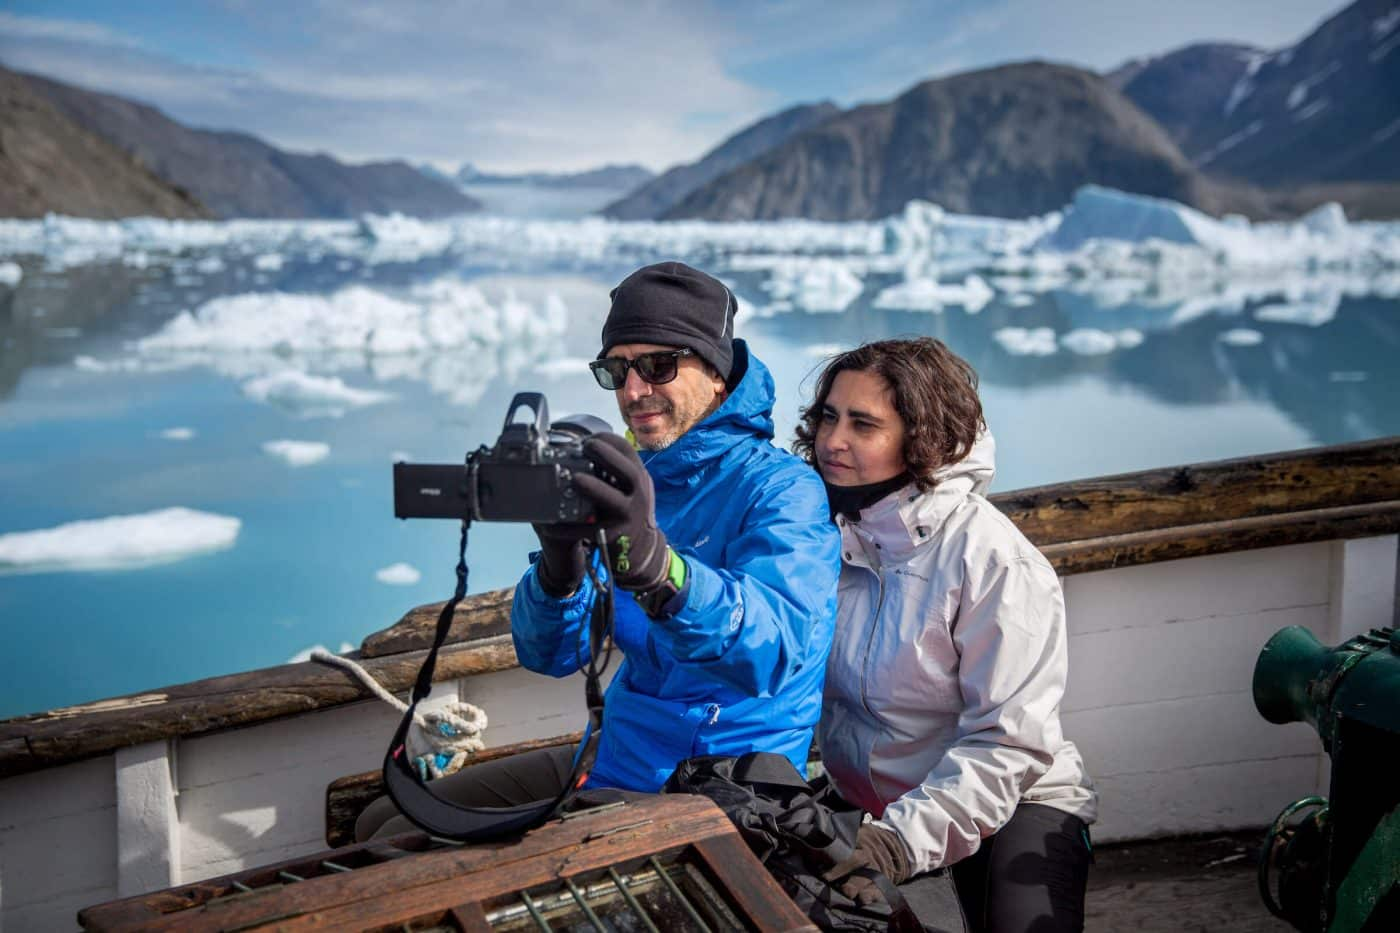 Modern selfie culture meets ancient glacial ice in Narsarsuaq, South Greenland. Photo by Mads Pihl